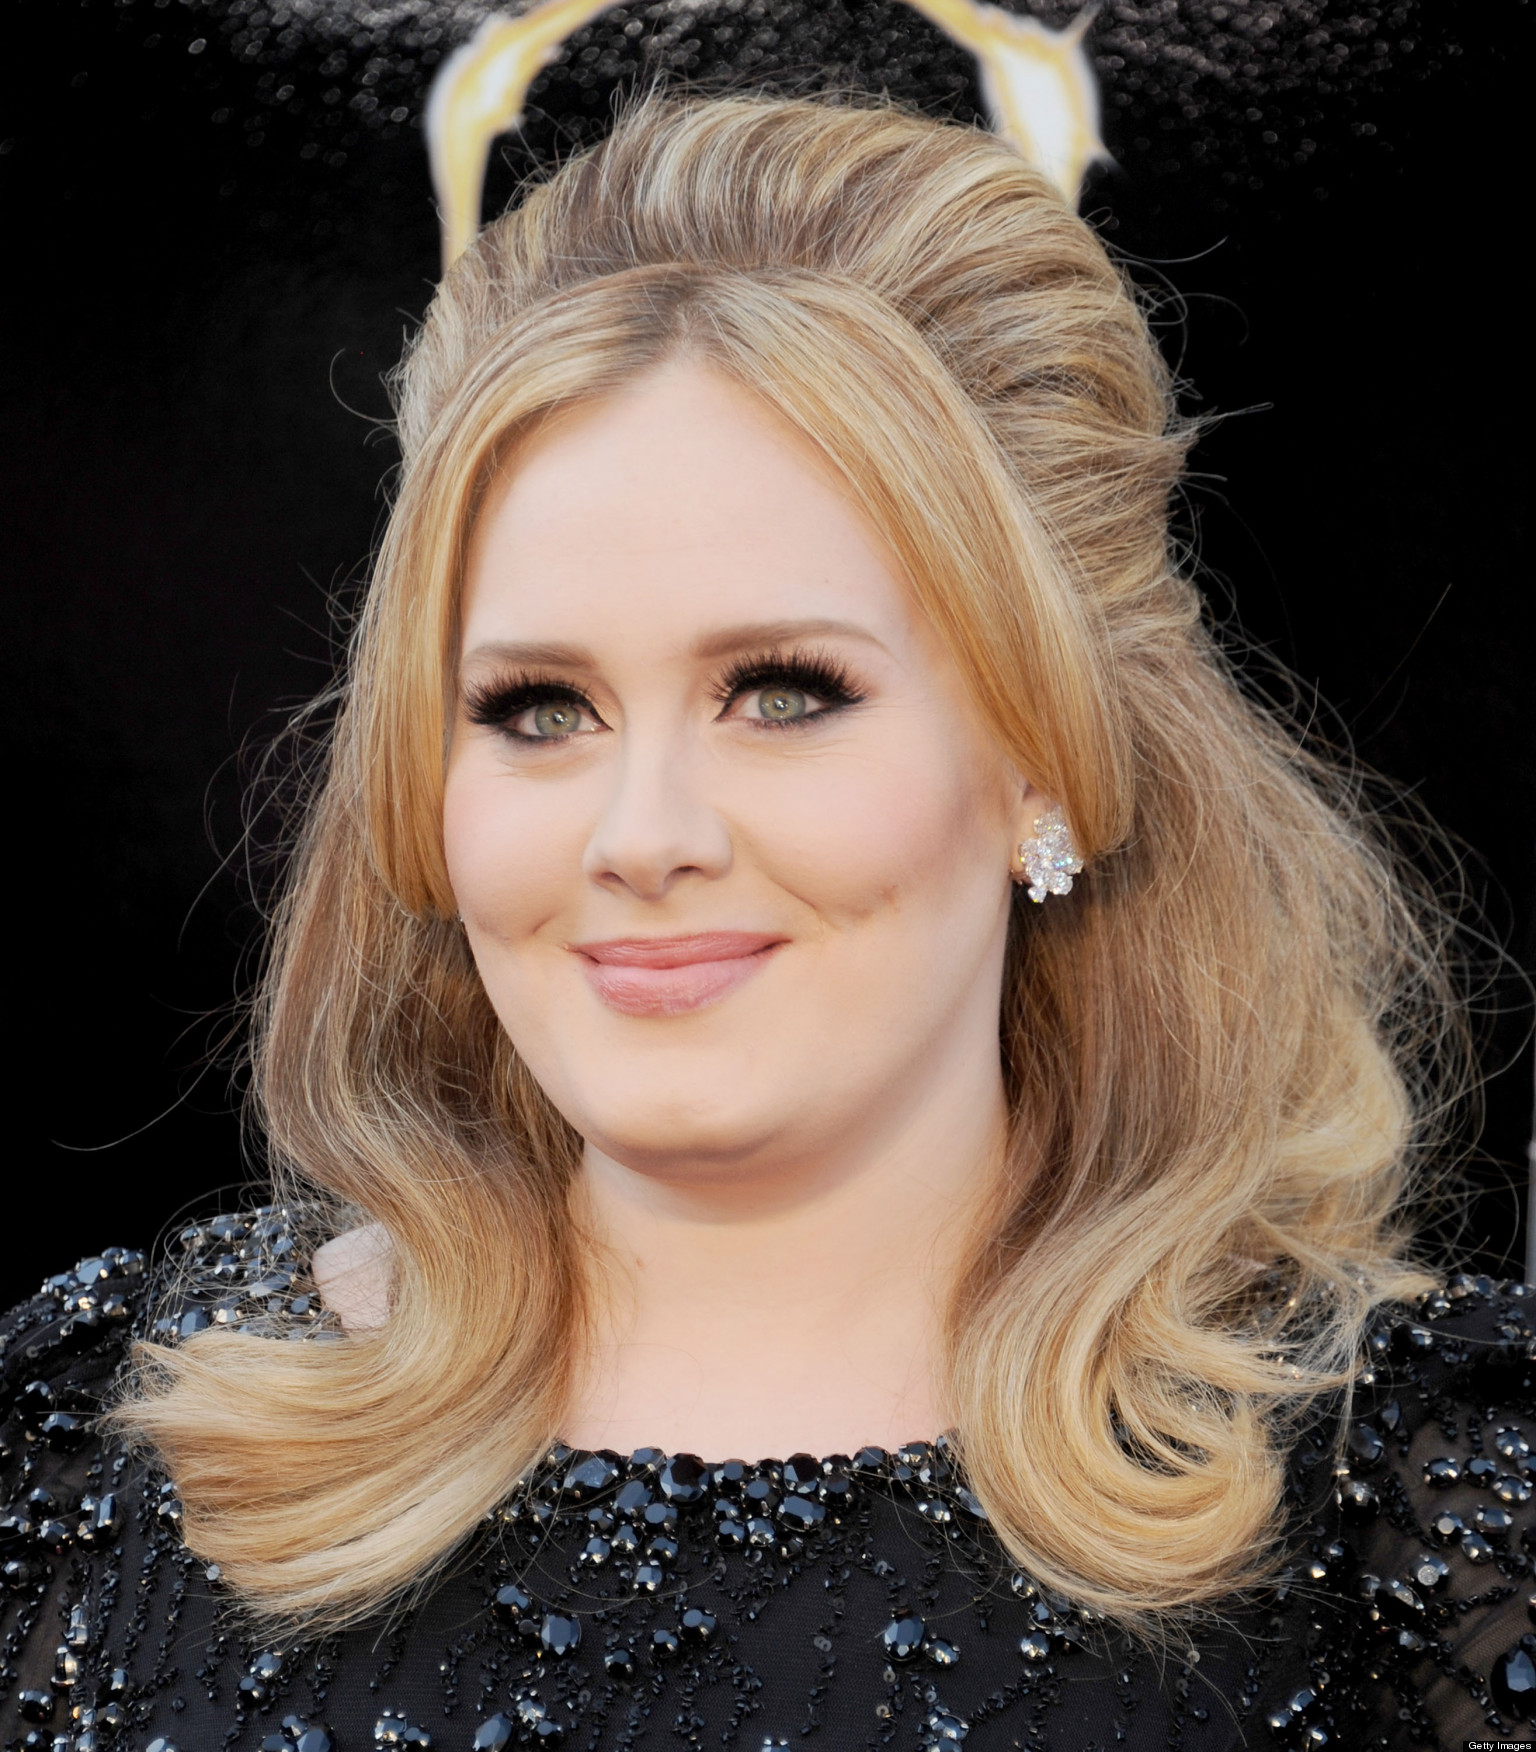 'Hello' from Adele's makeup artist, who filmed an eyeliner ...